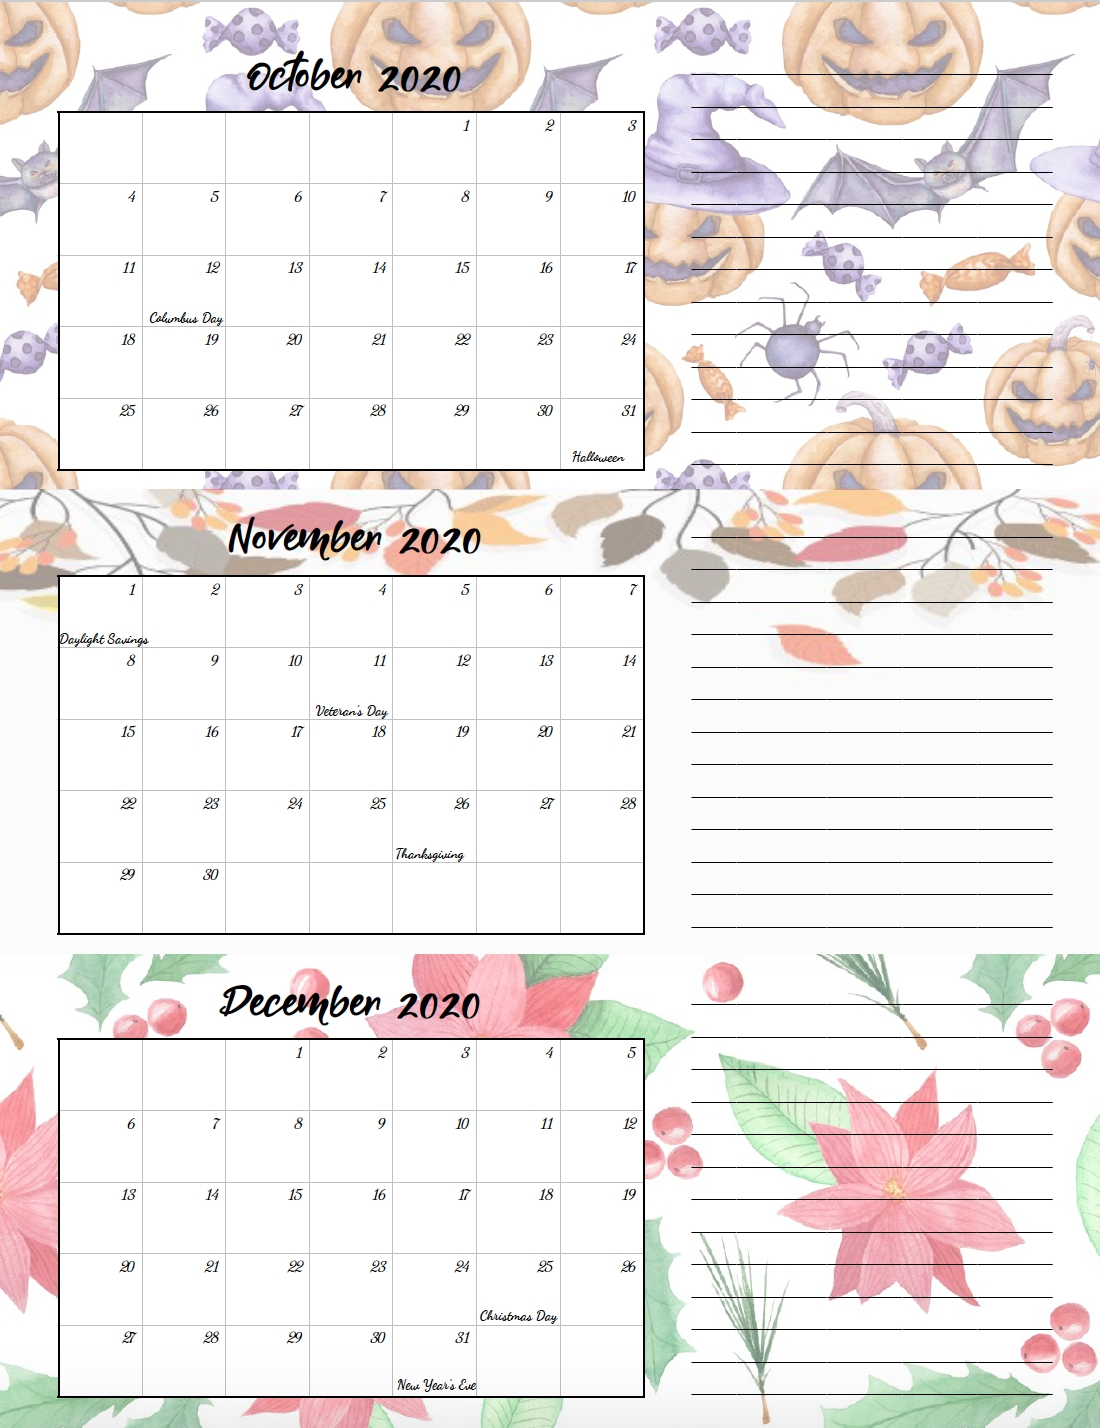 Free Printable 2020 Quarterly Calendars With Holidays: 3 regarding Free Printable Calander 2020 Victoria Wiht Spaces To Write